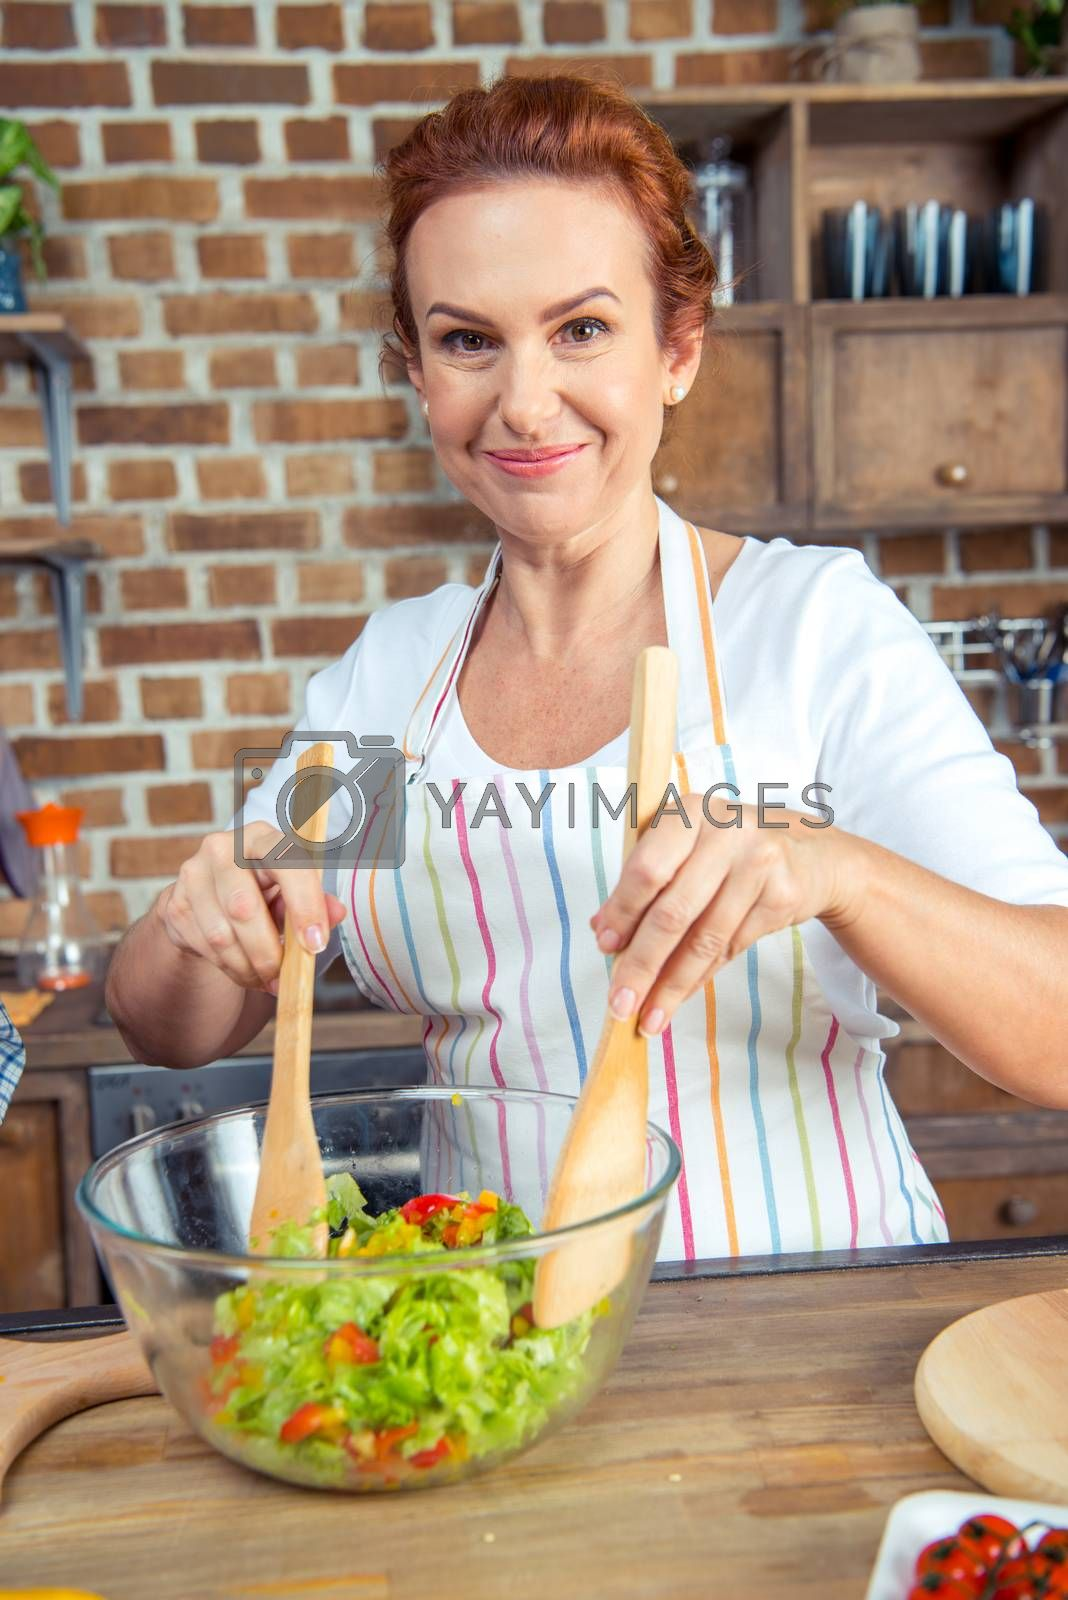 Smiling woman in apron mixing fresh vegetable salad in kitchen